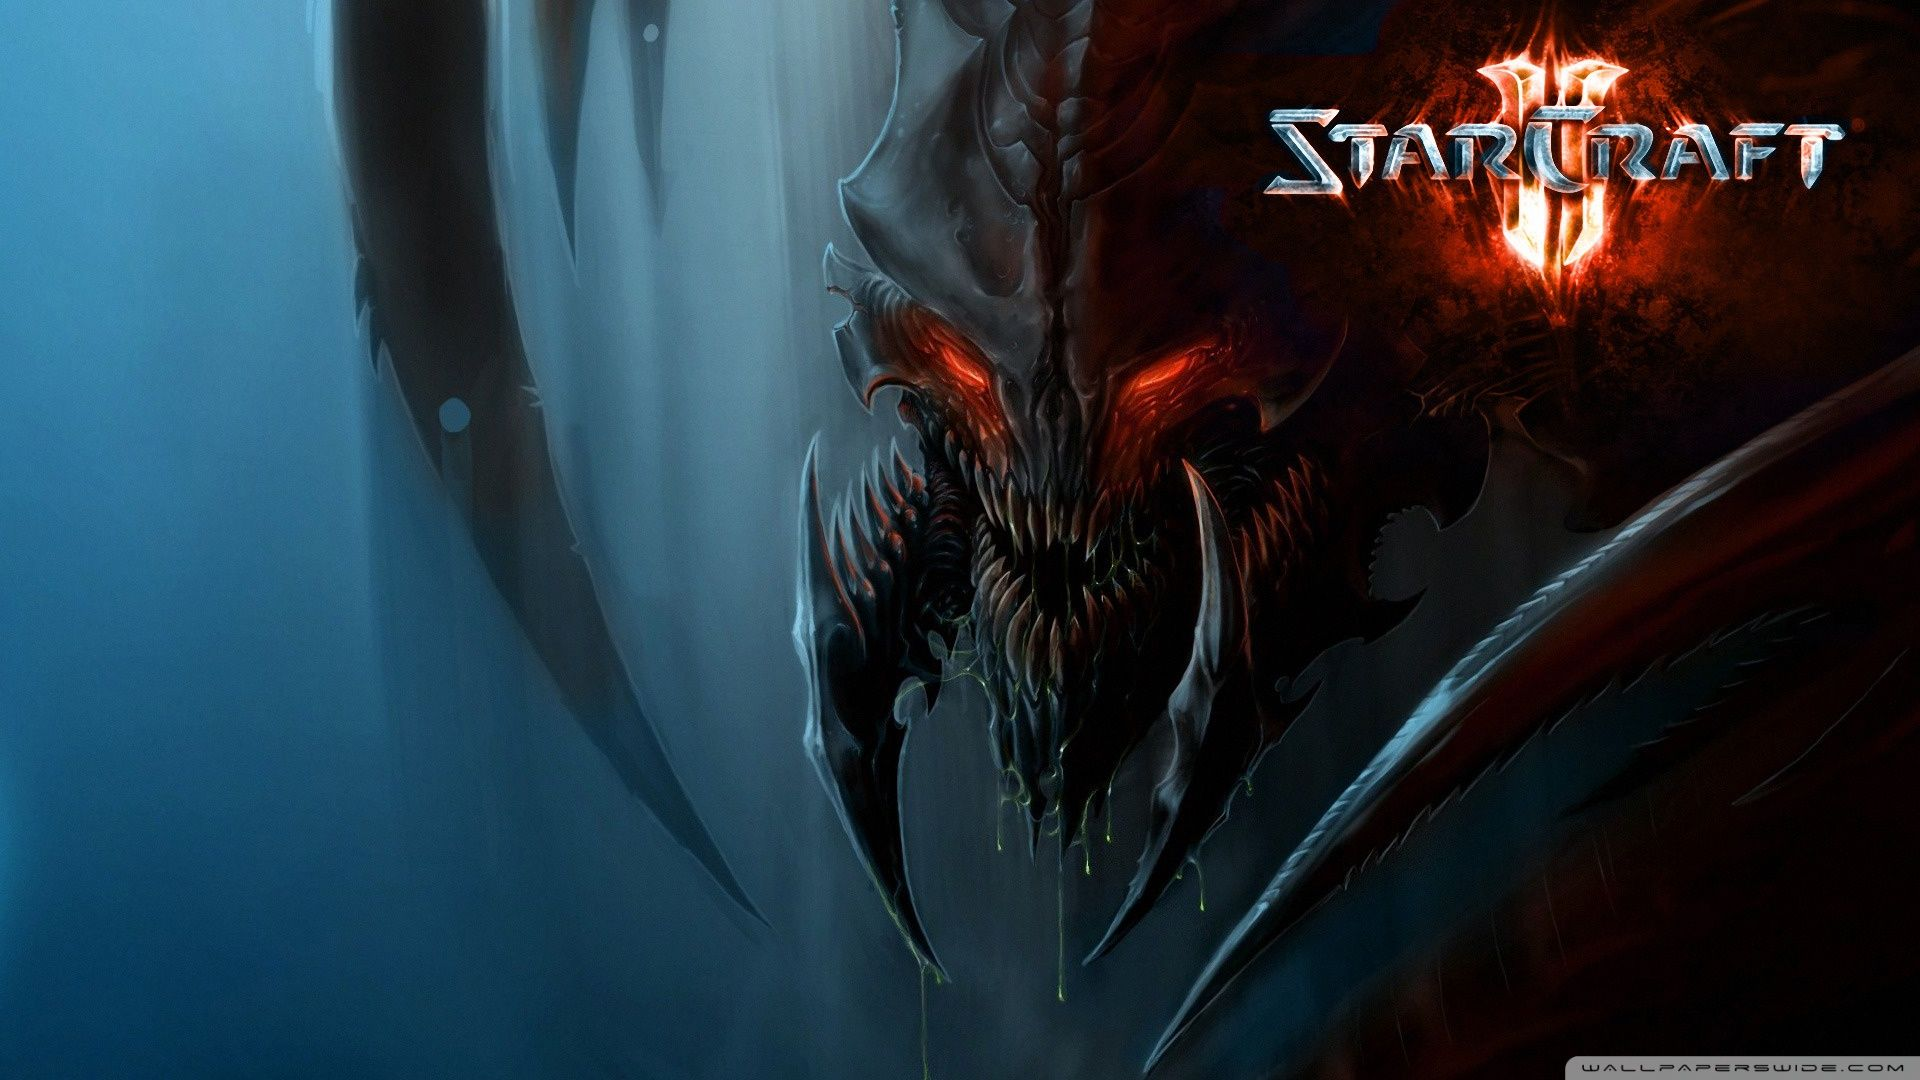 Starcraft 2 Wallpapers Top Free Starcraft 2 Backgrounds